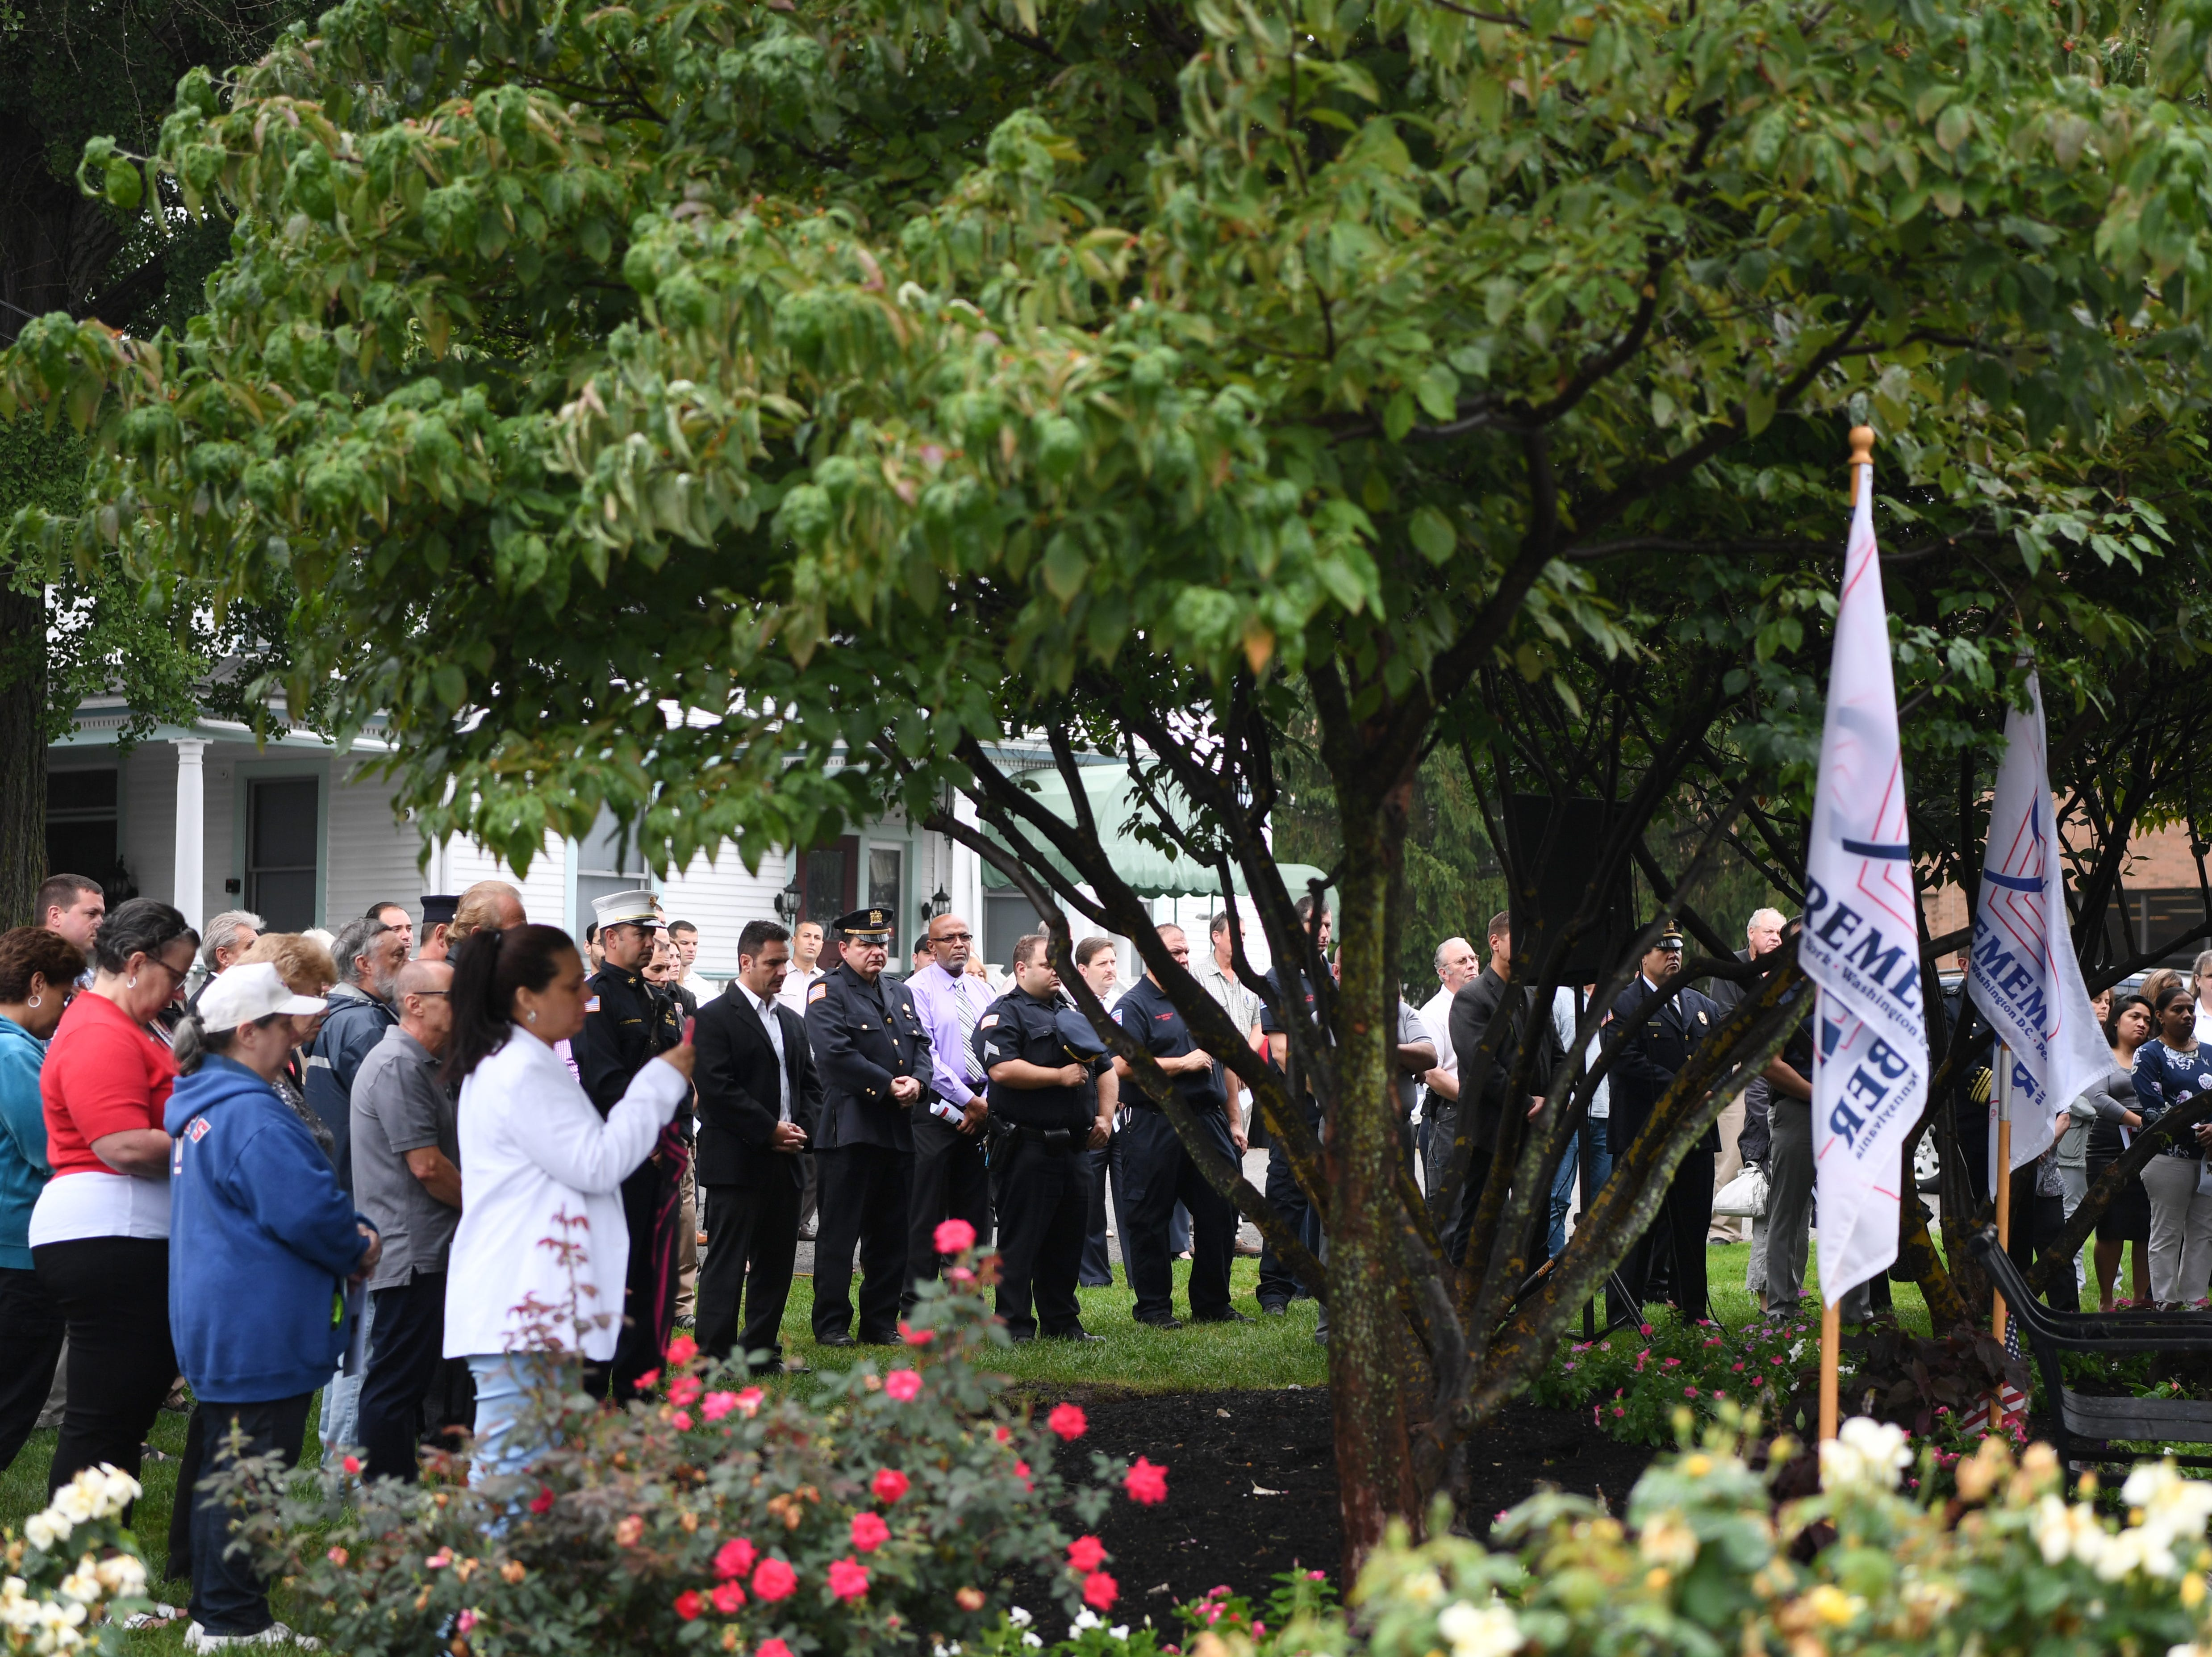 9/11 memorial service at Clifton City Hall on Tuesday, September 11, 2018.